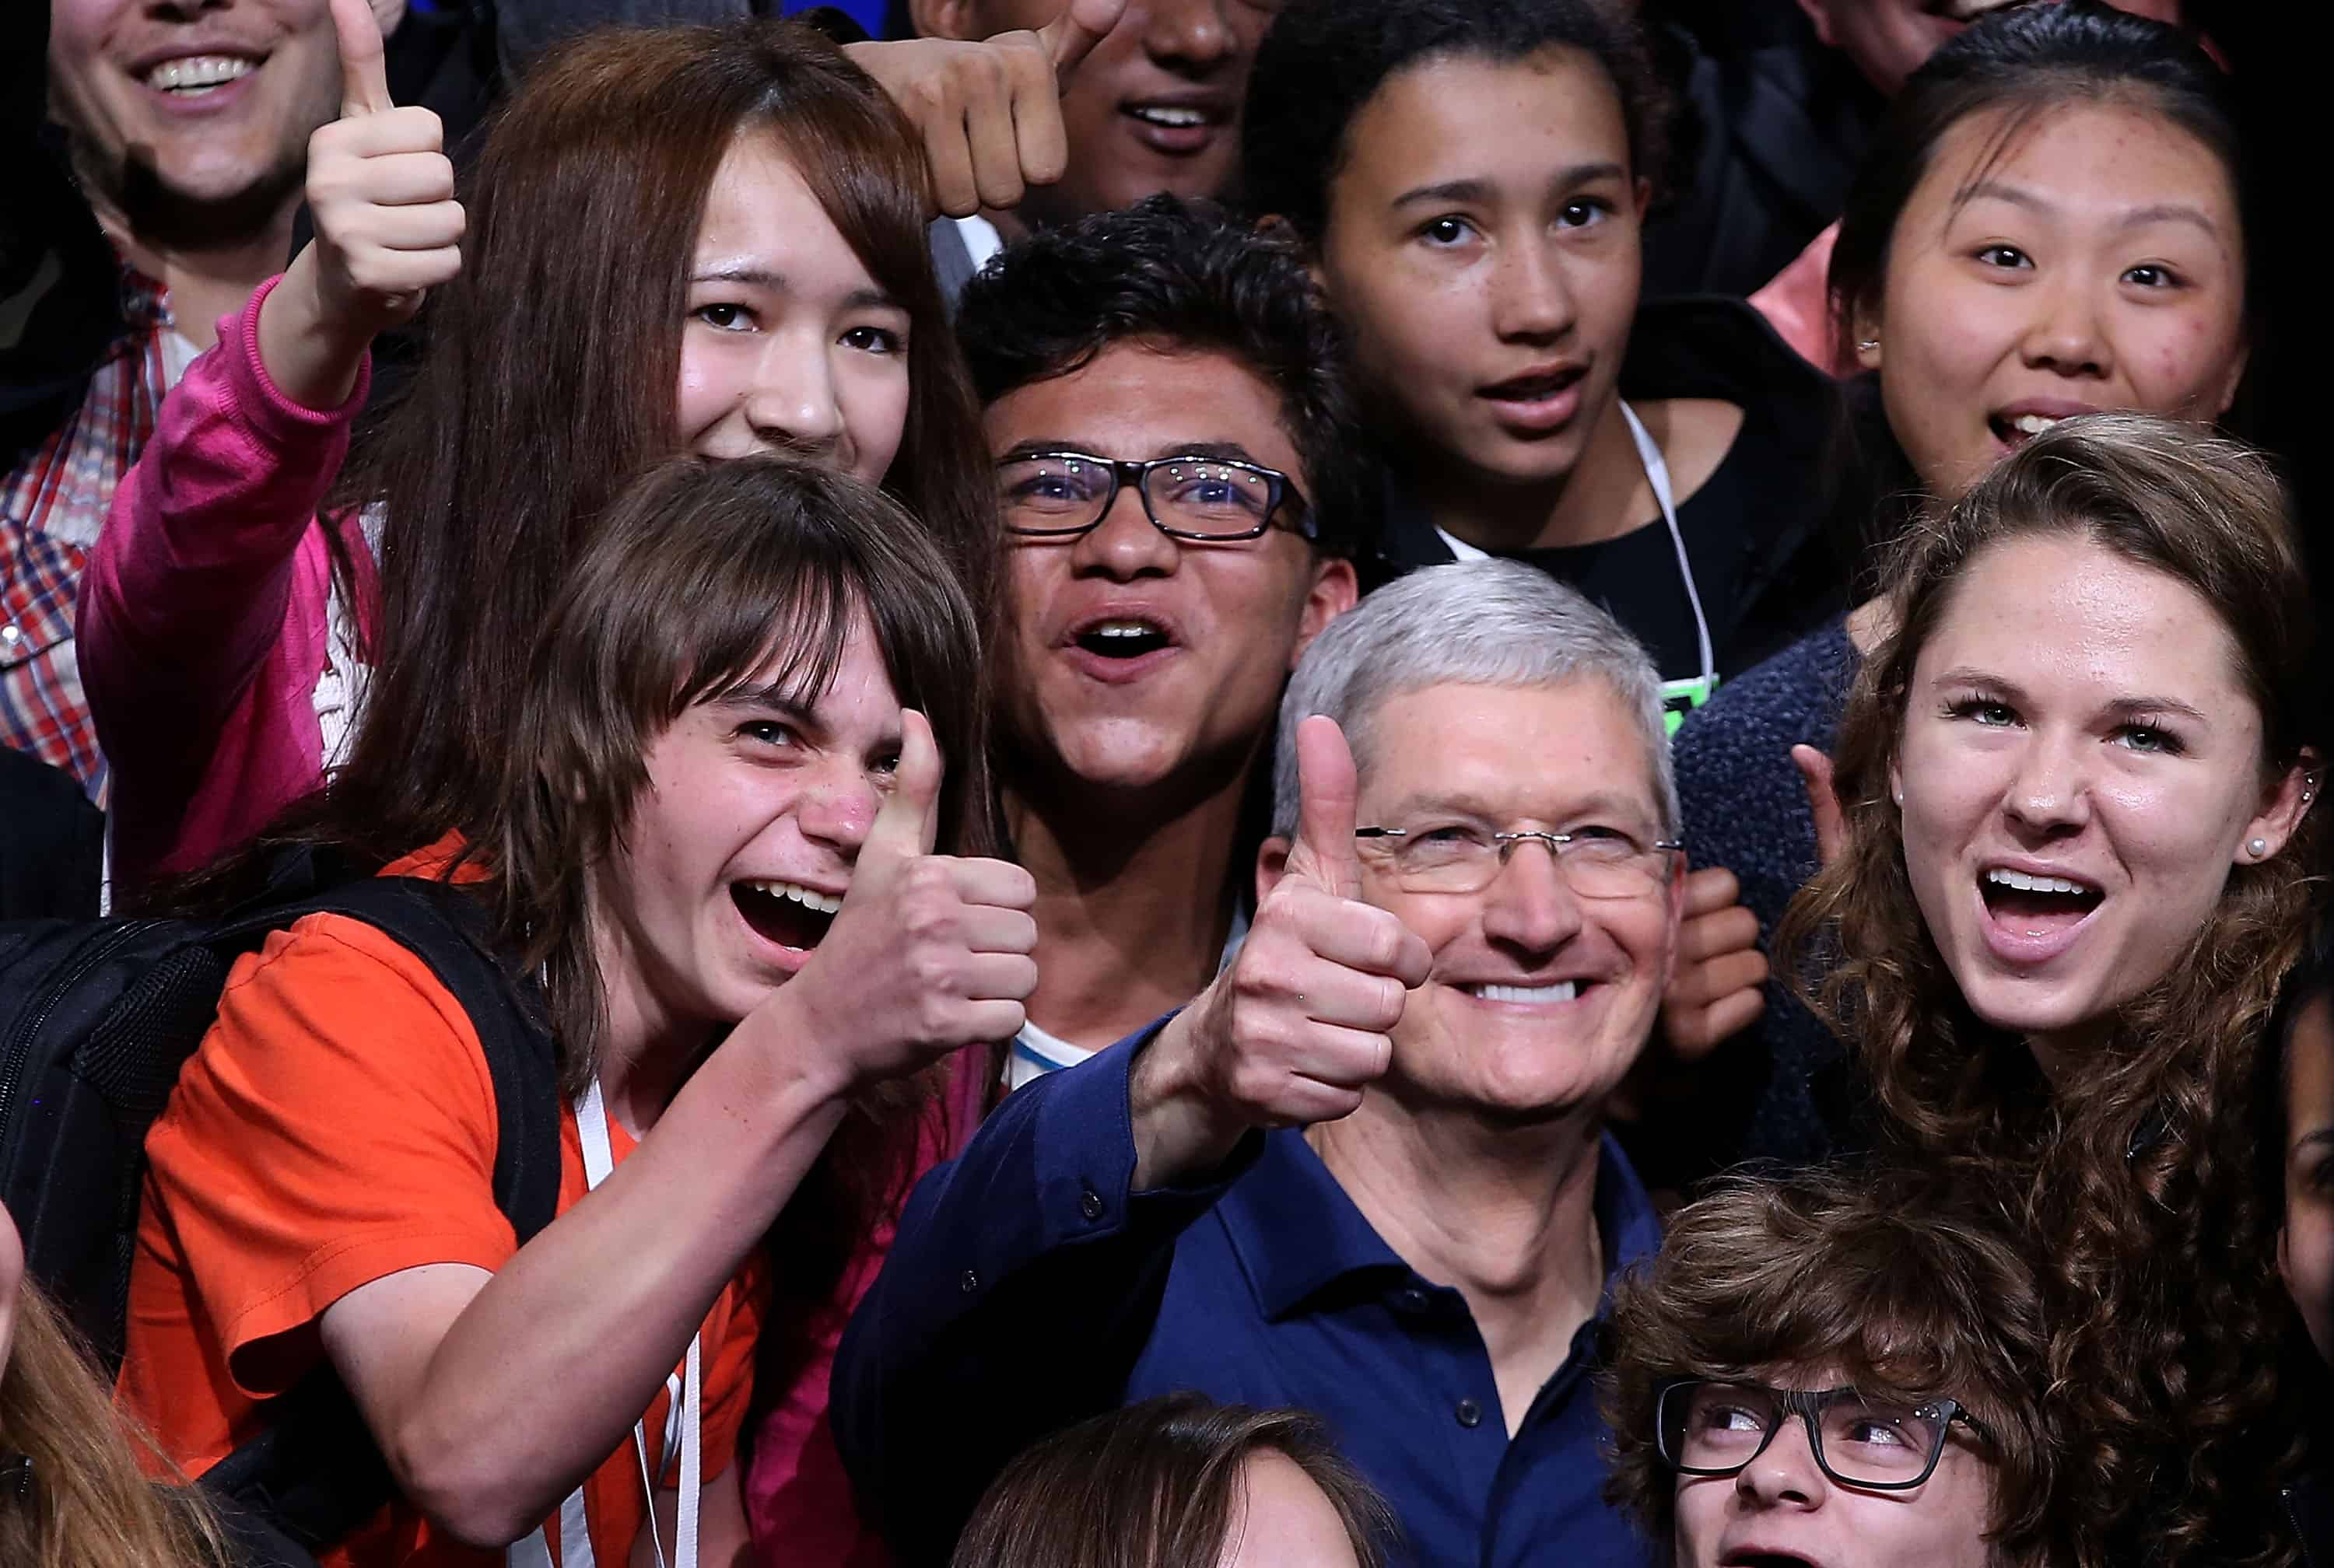 Apple CEO Tim Cook, center, poses for a photo with high school kids.